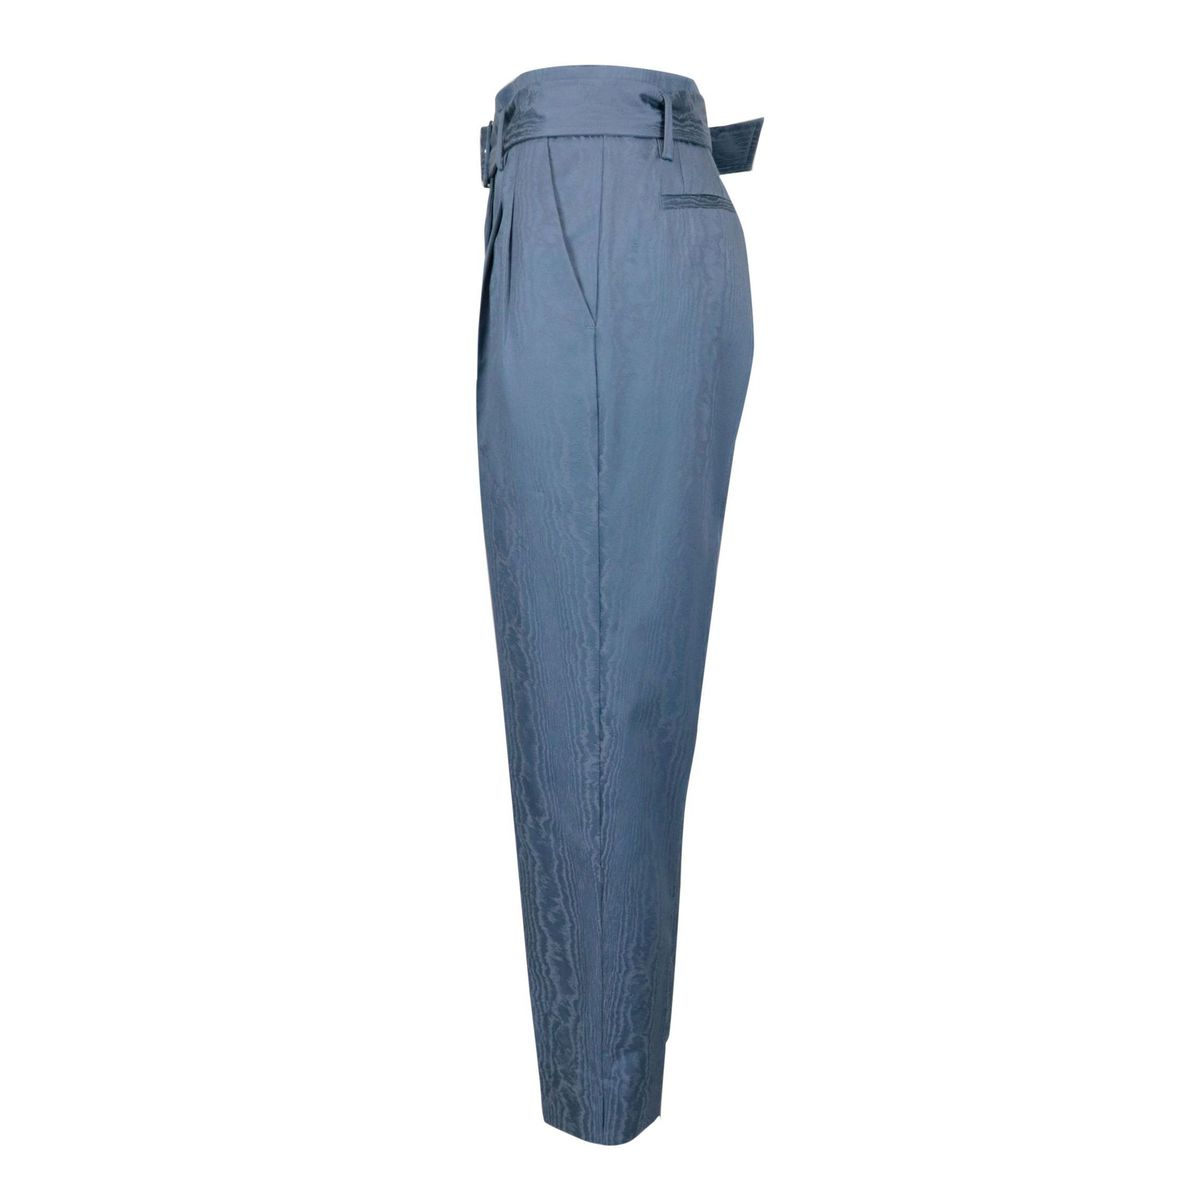 Moirè trousers with straight bottom in stretch cotton. Peacock Maliparmi